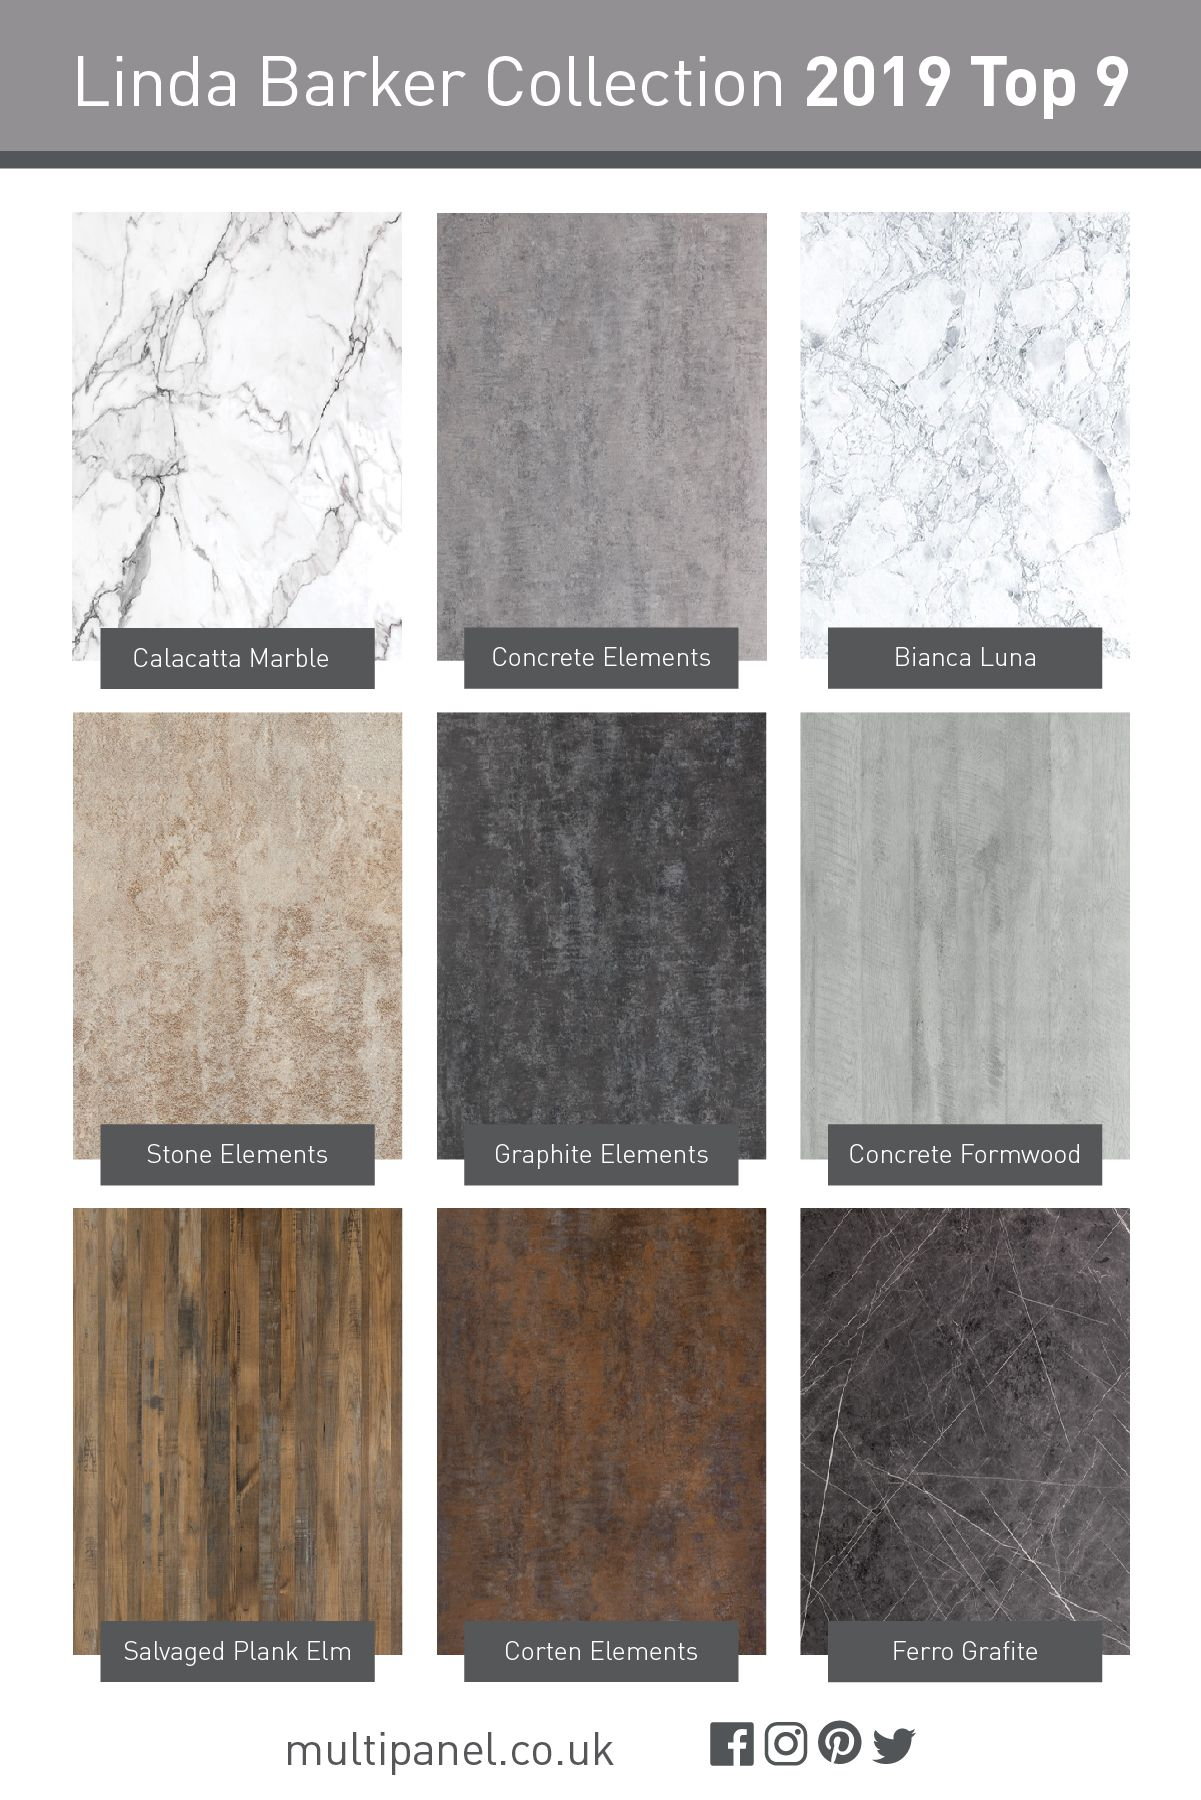 Top 9 Shower Panels From Multipanel In 2020 Bathroom Wall Panels Stone Shower Walls Shower Panels